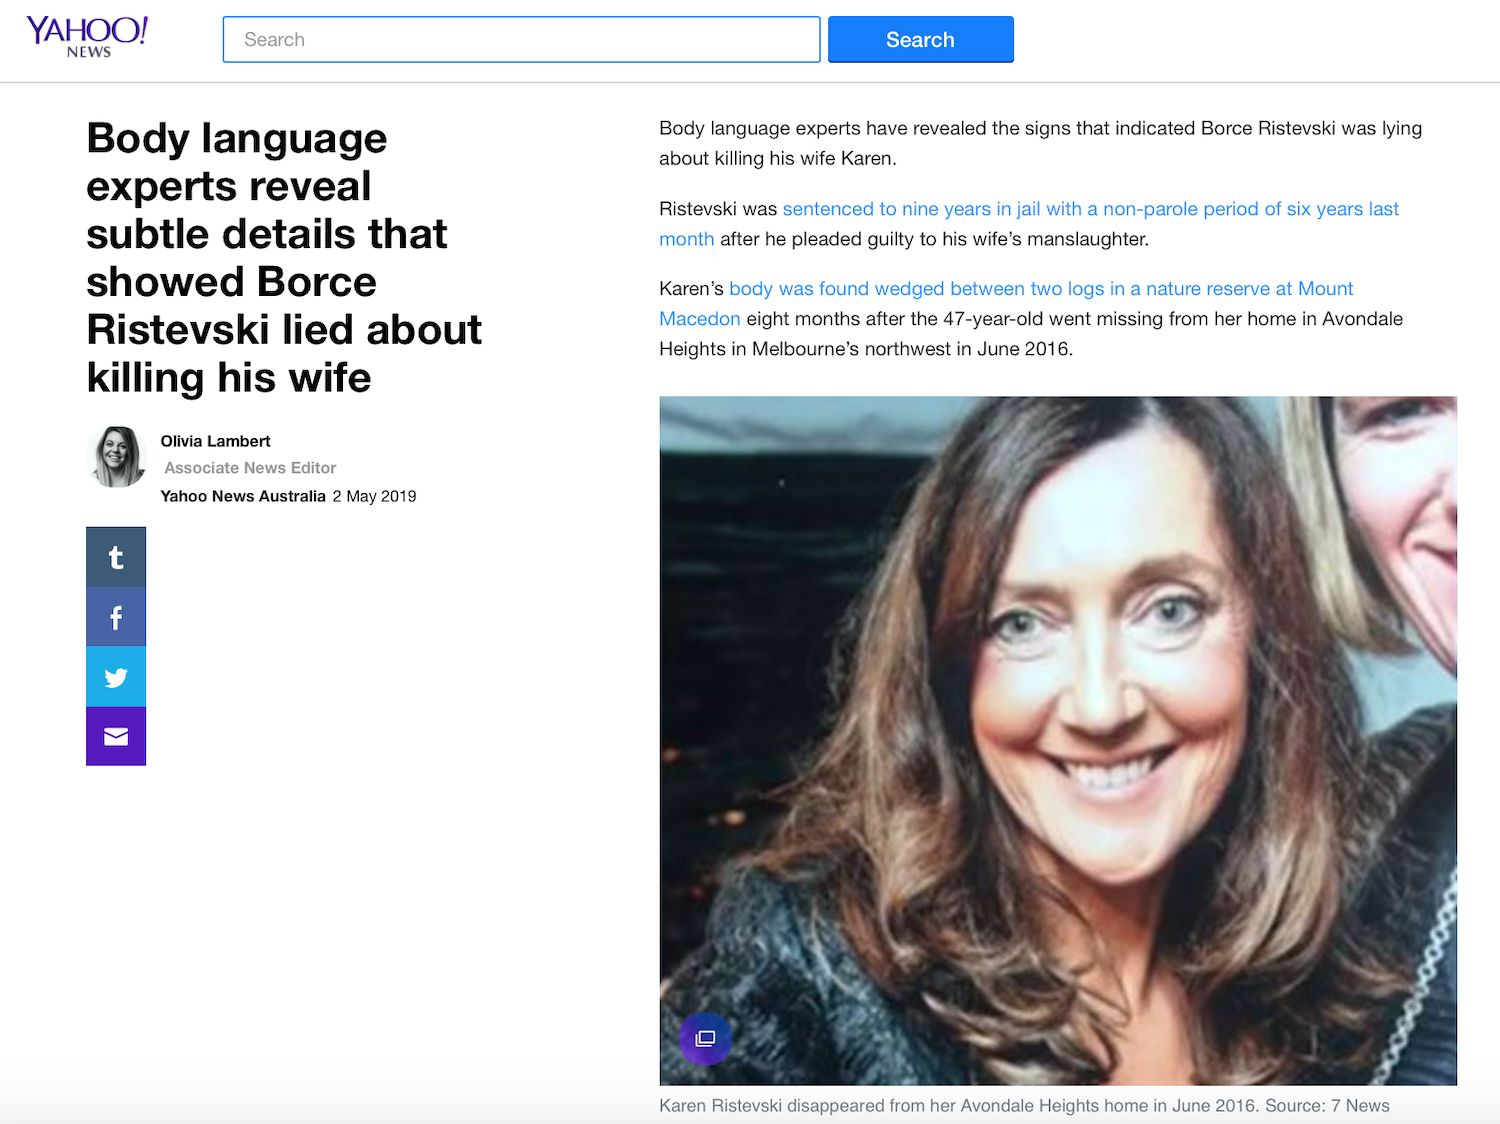 Borce Ristevski Body Language experts reveal subtle details that showed he lied about killing his wife.